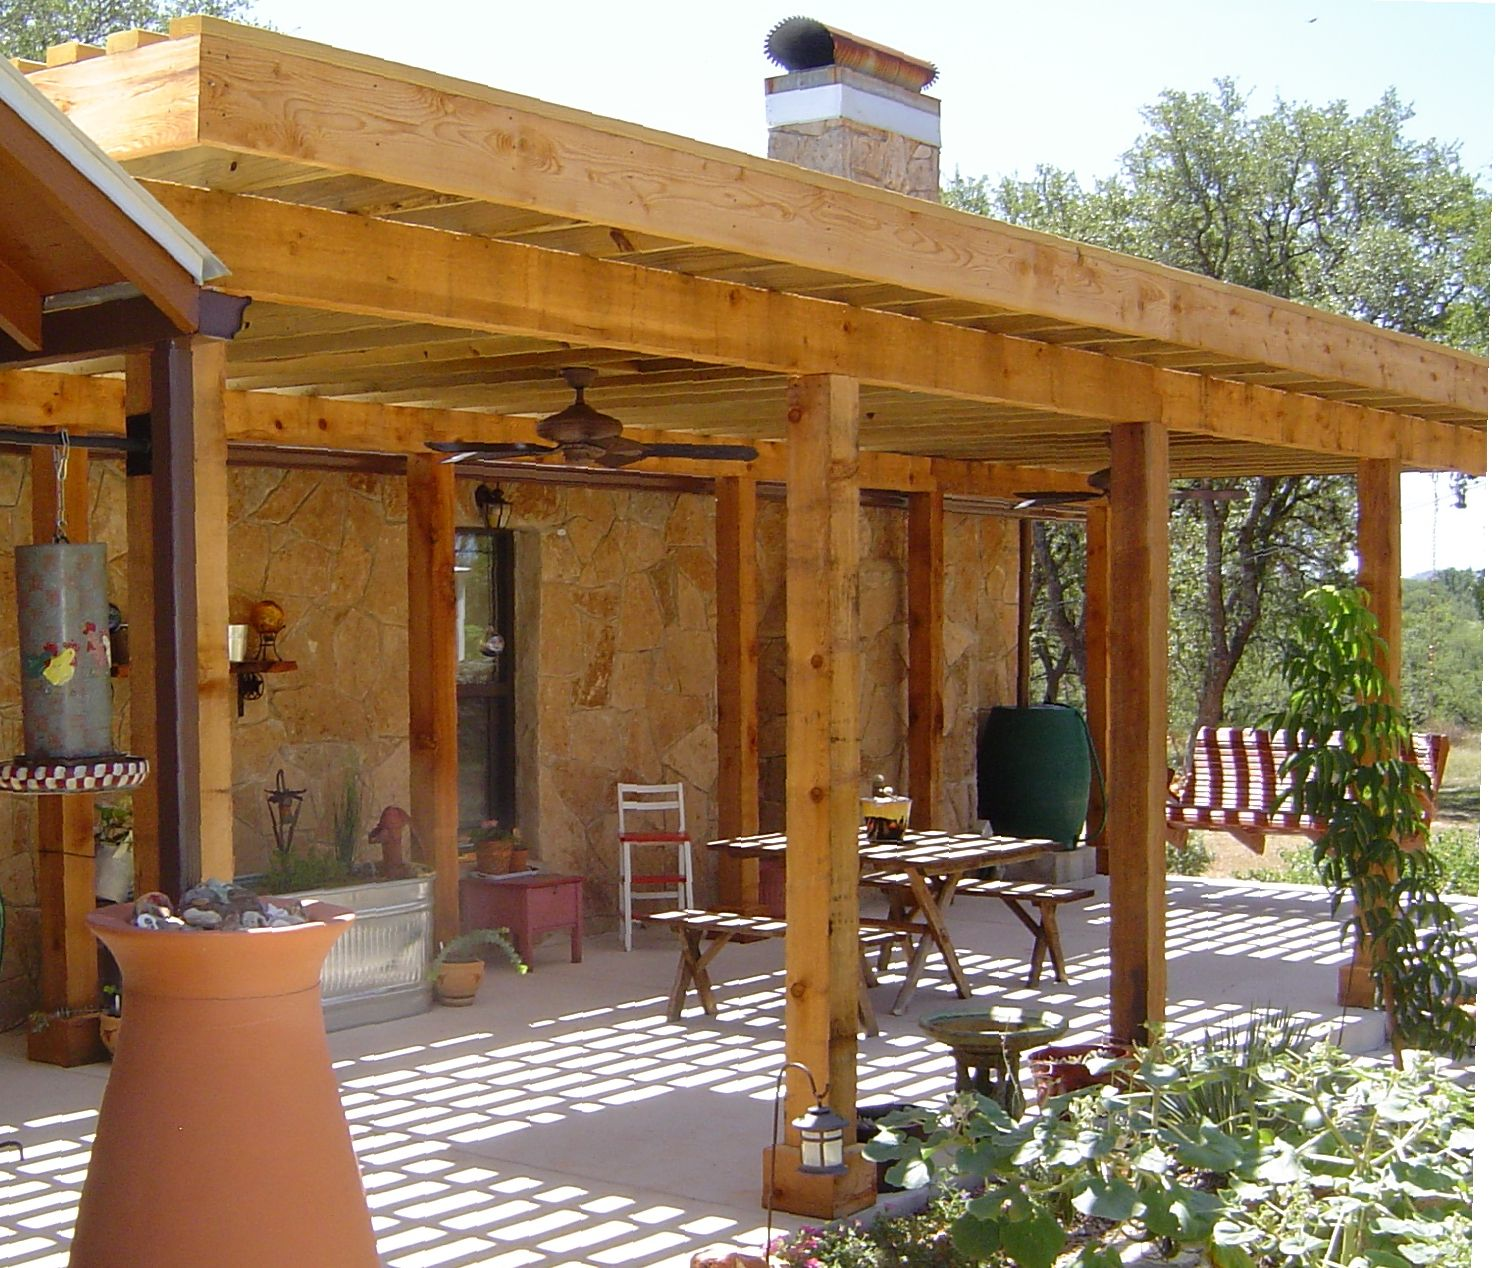 Perfect Pergola For A TX Hill Country Home. We Can Build